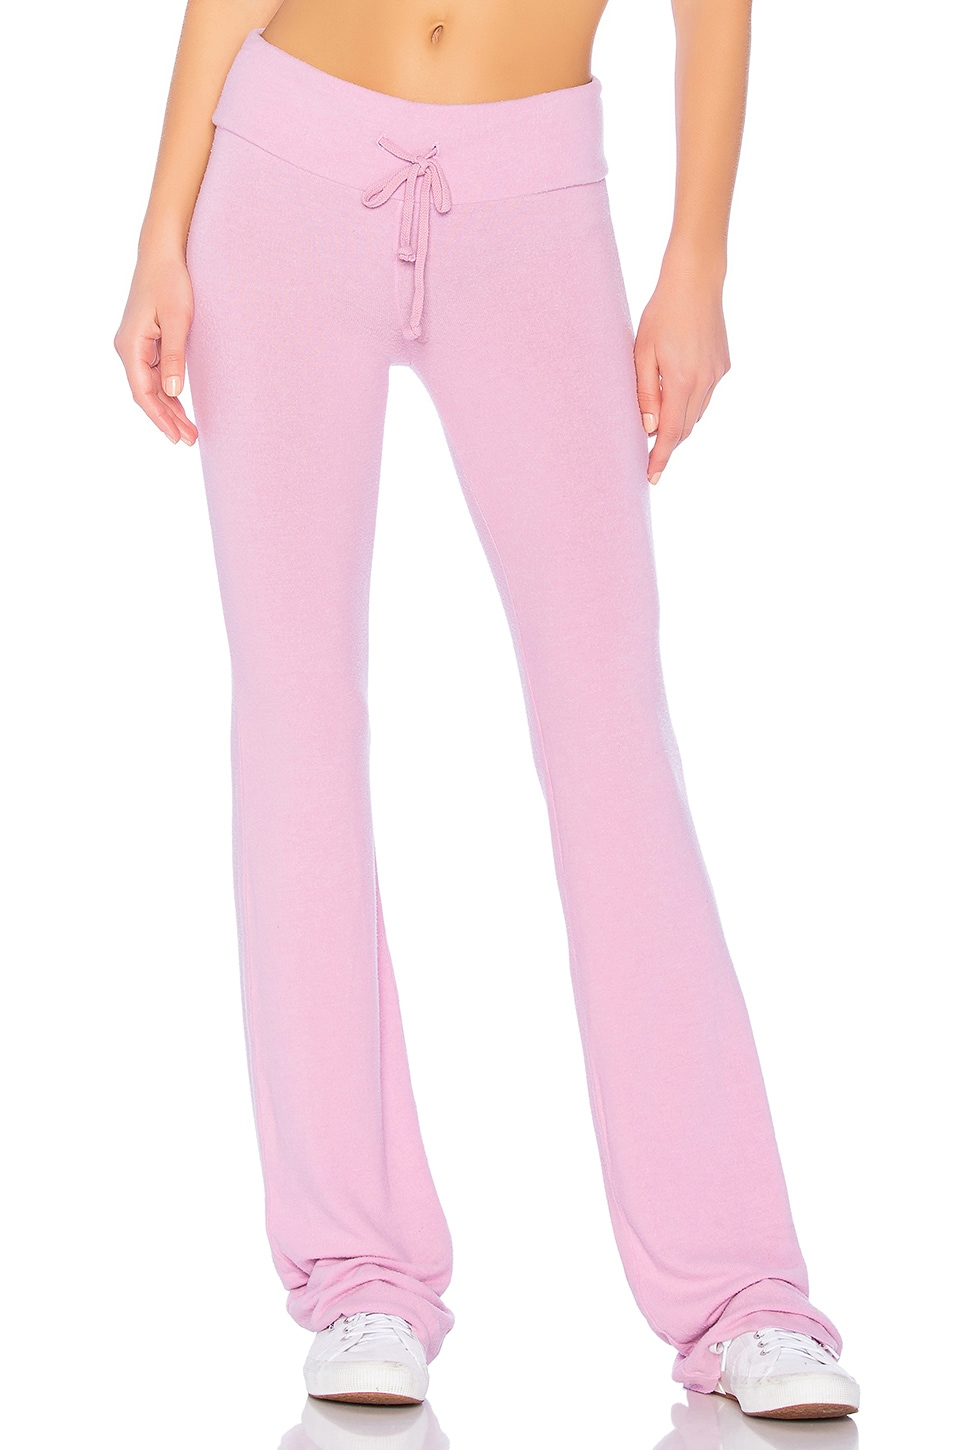 Wildfox Couture Tennis Club Pant in Orchid